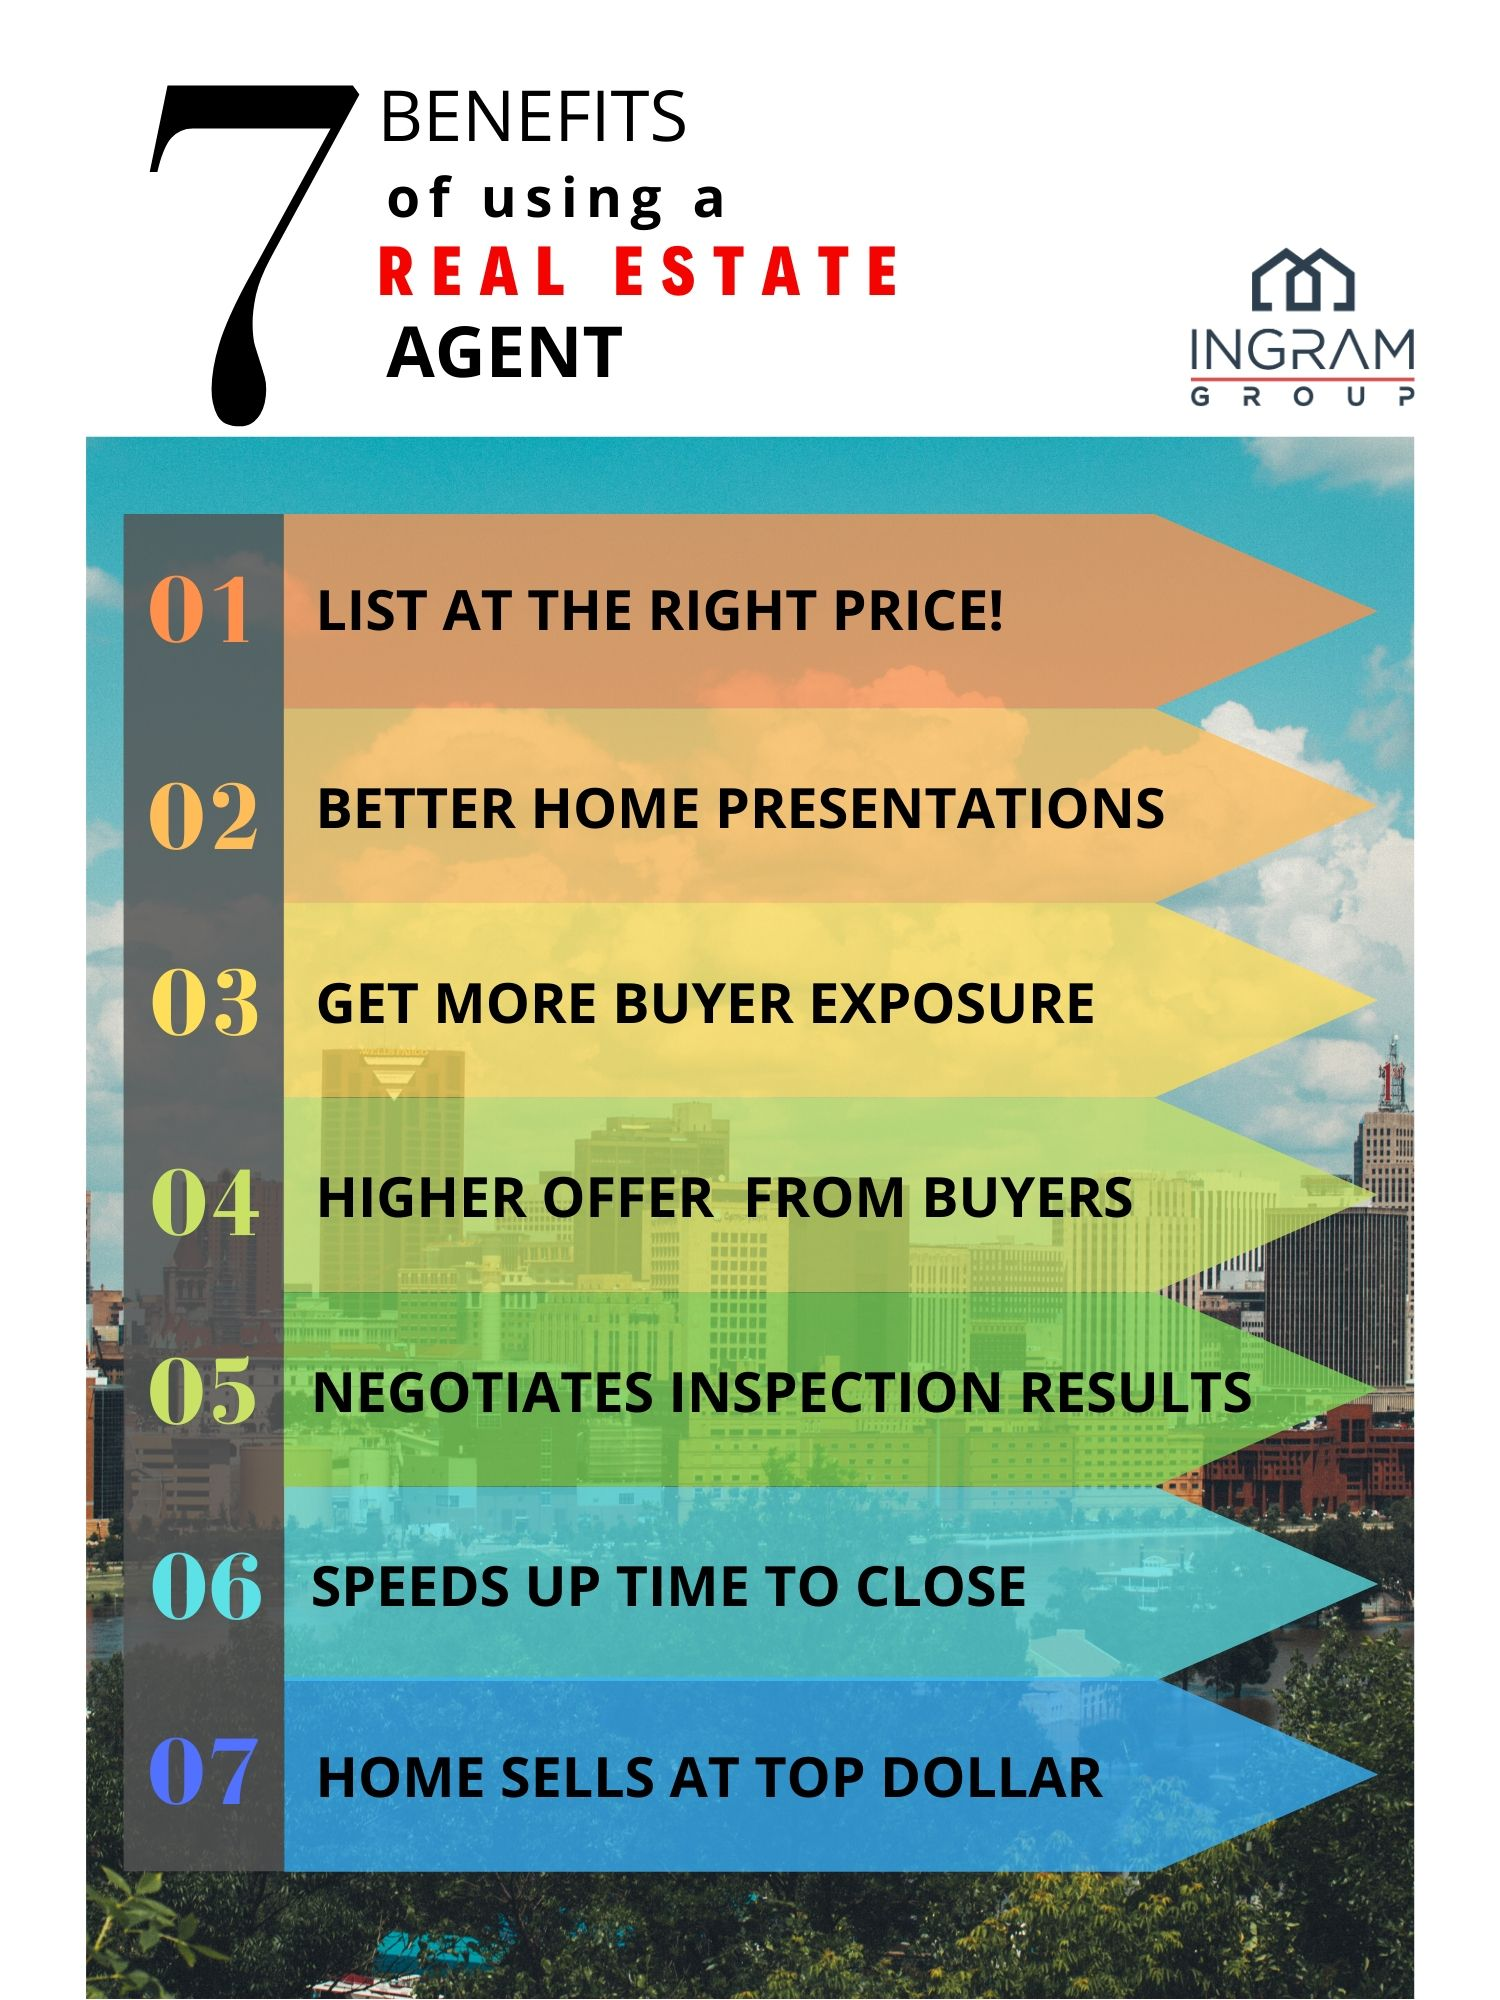 7 BENEFITS OF REAL ESTATE AGENT (2).jpg